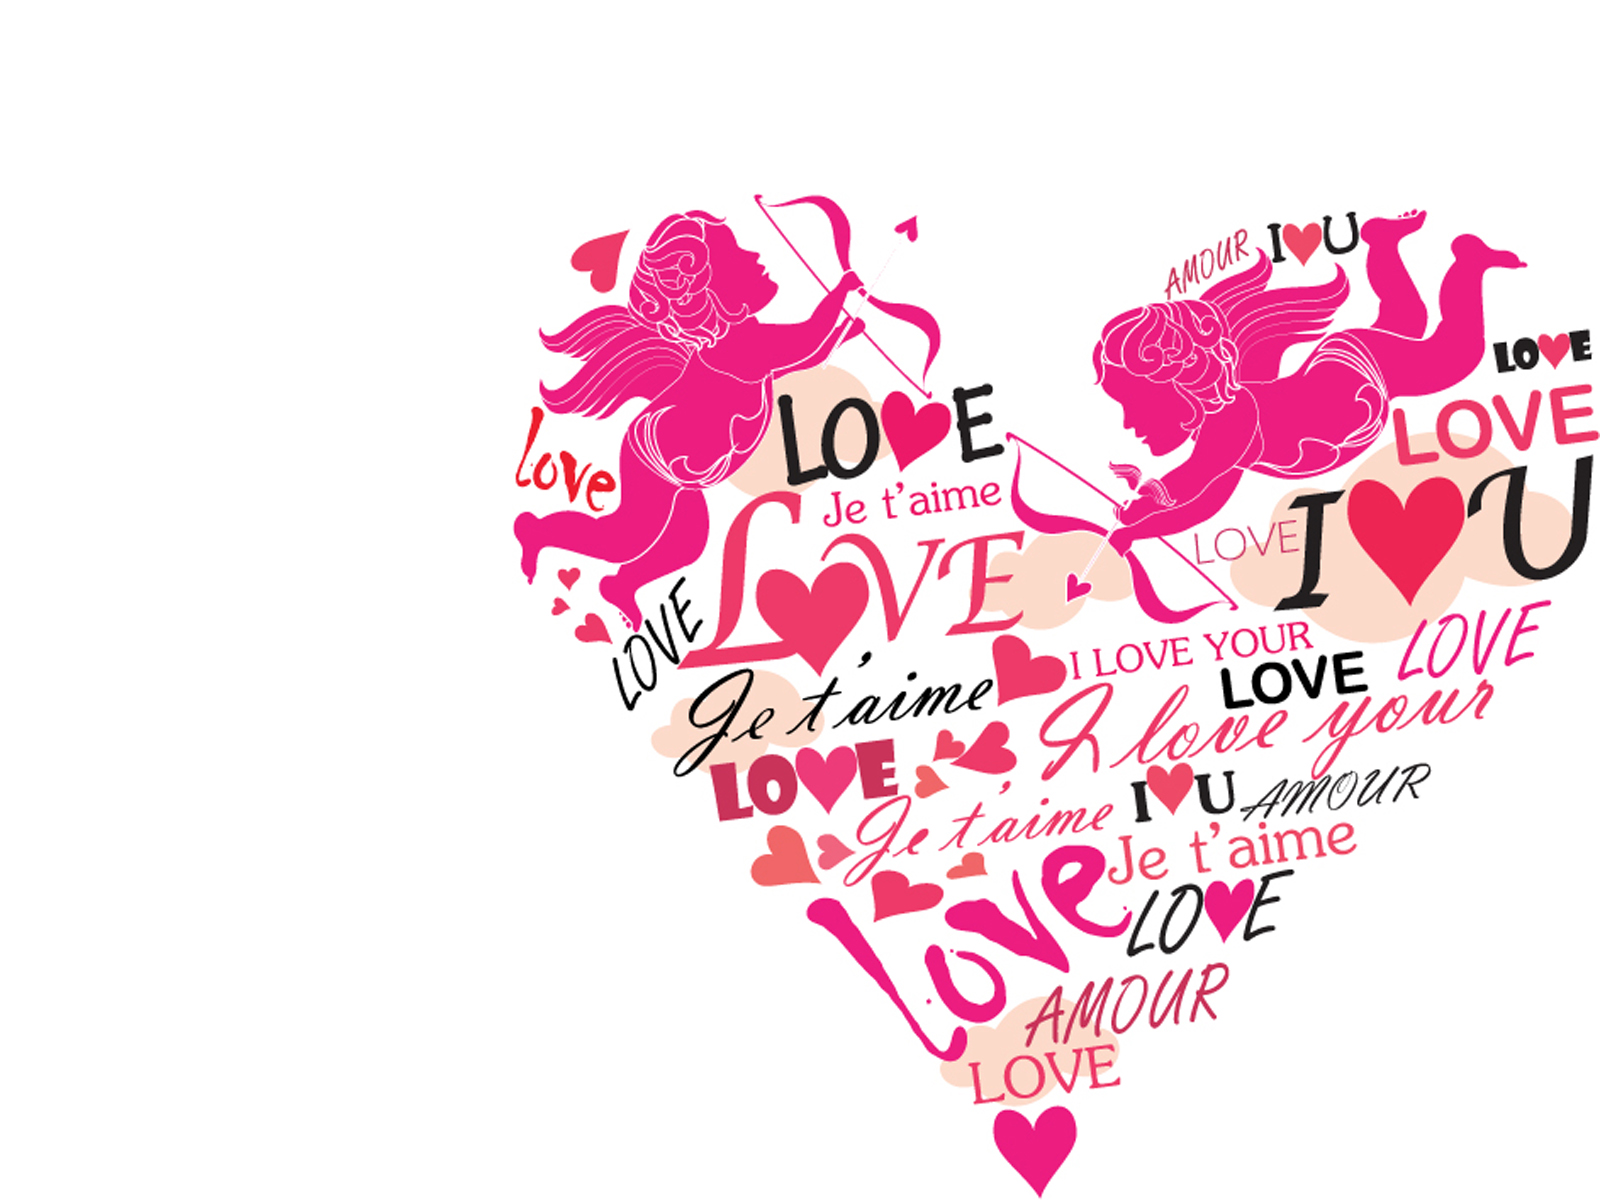 Eros heart for love PPT Backgrounds